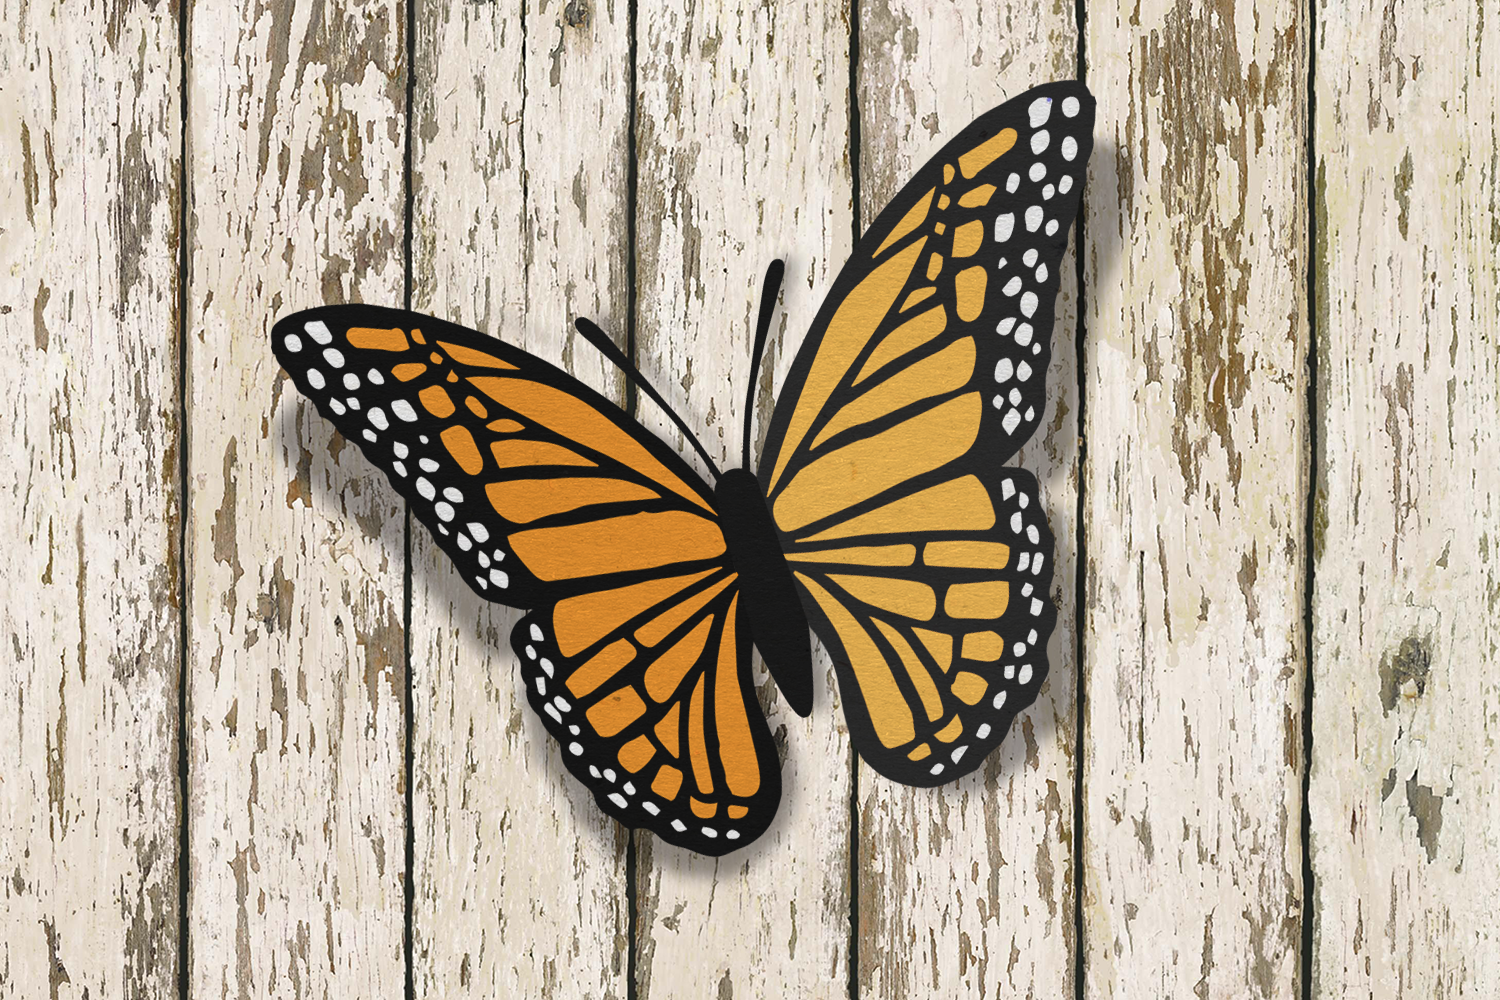 Download Free Monarch Butterfly Svg Graphic By Risarocksit Creative Fabrica for Cricut Explore, Silhouette and other cutting machines.